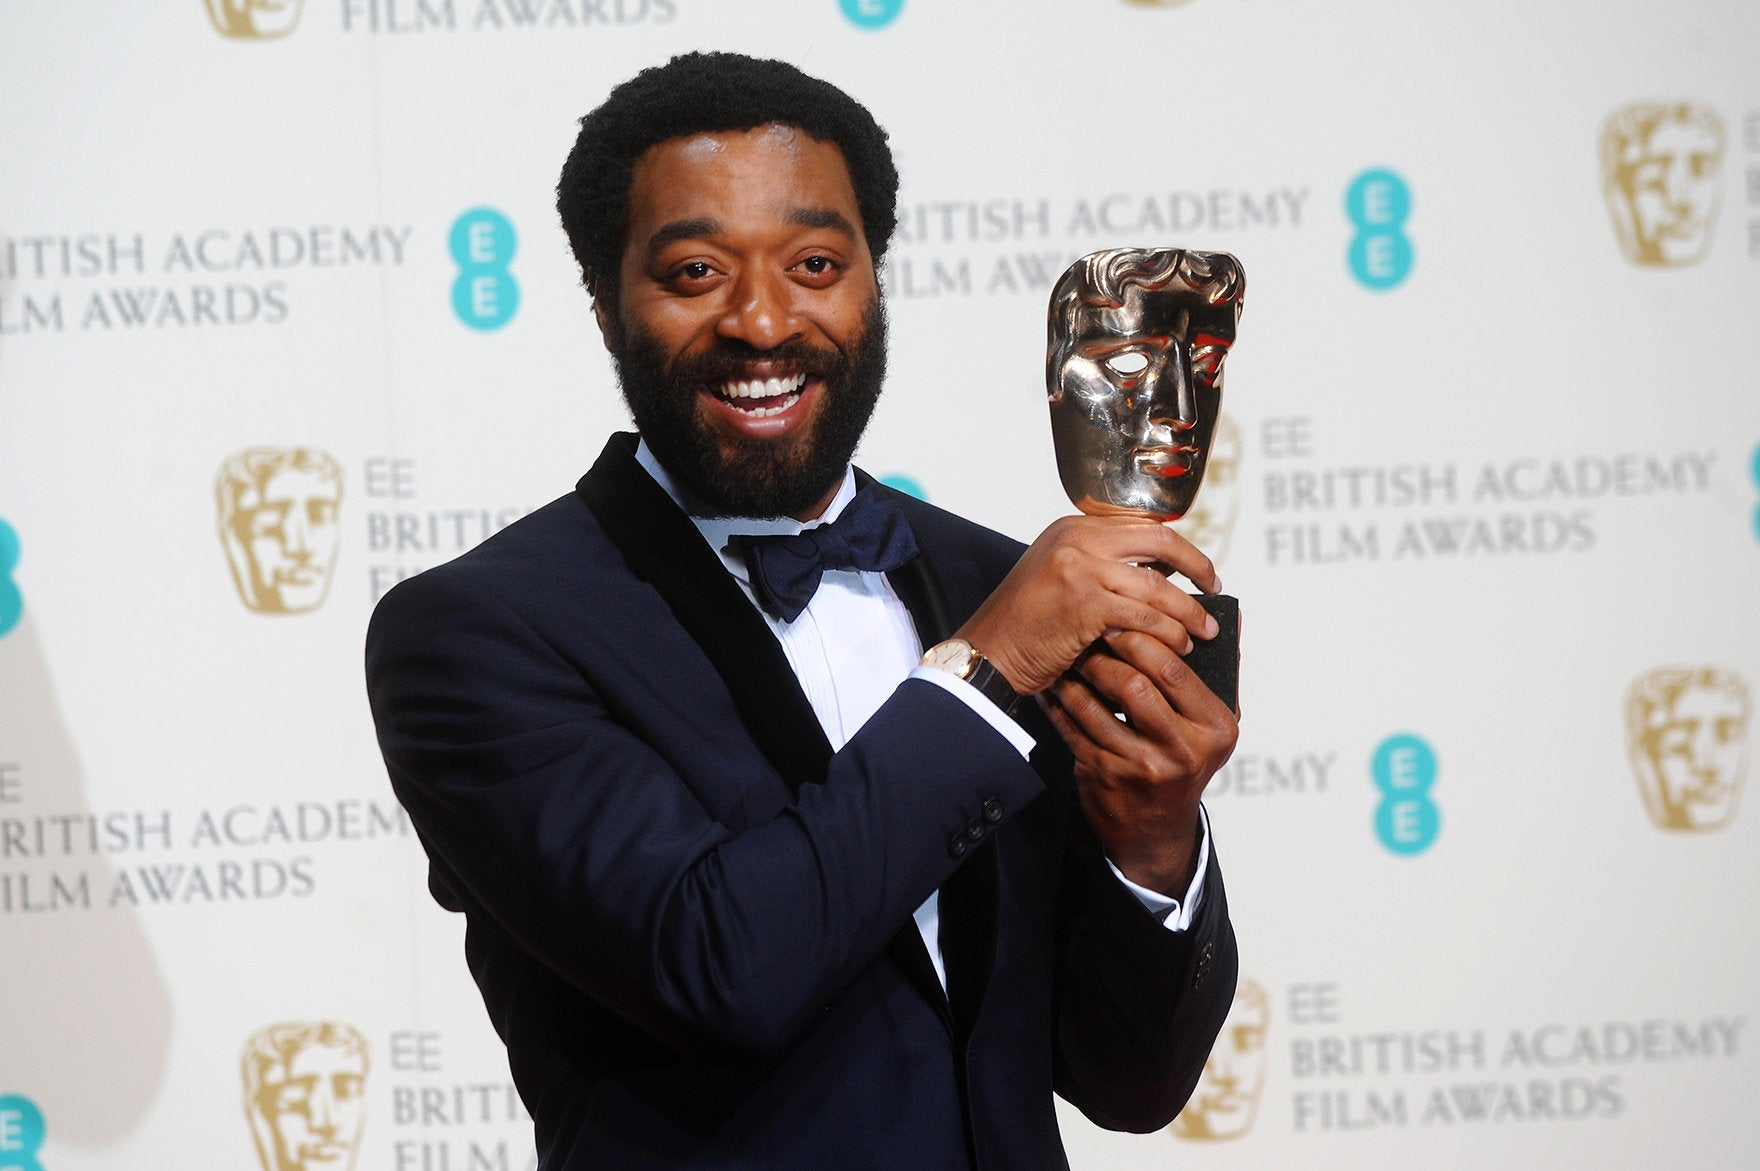 '12 Years a Slave' Wins Best Film at BAFTA Awards